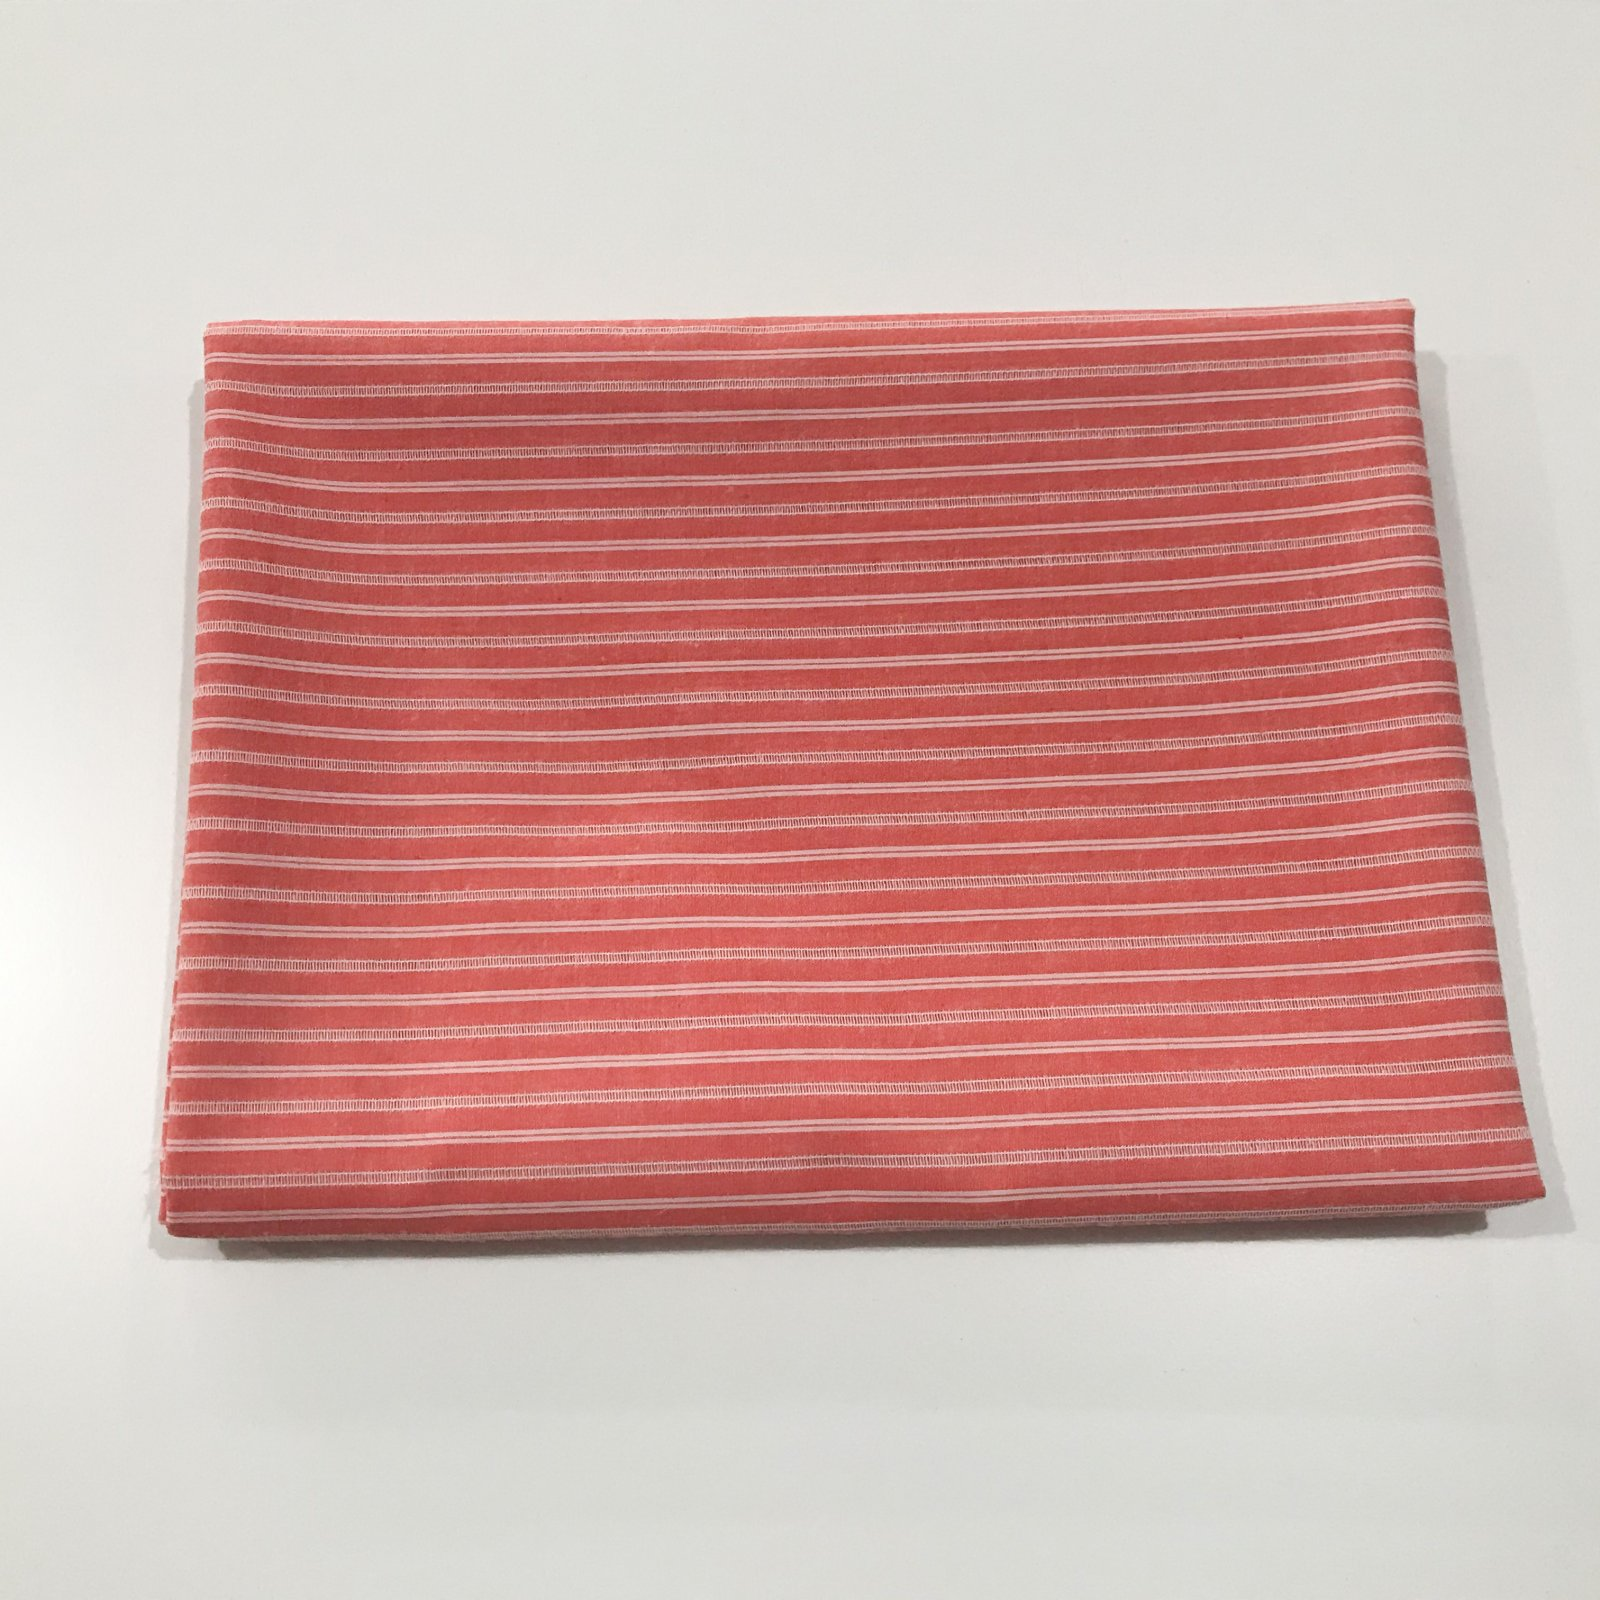 2 1/4 yard - Cotton Woven - Red Spaced Stripes